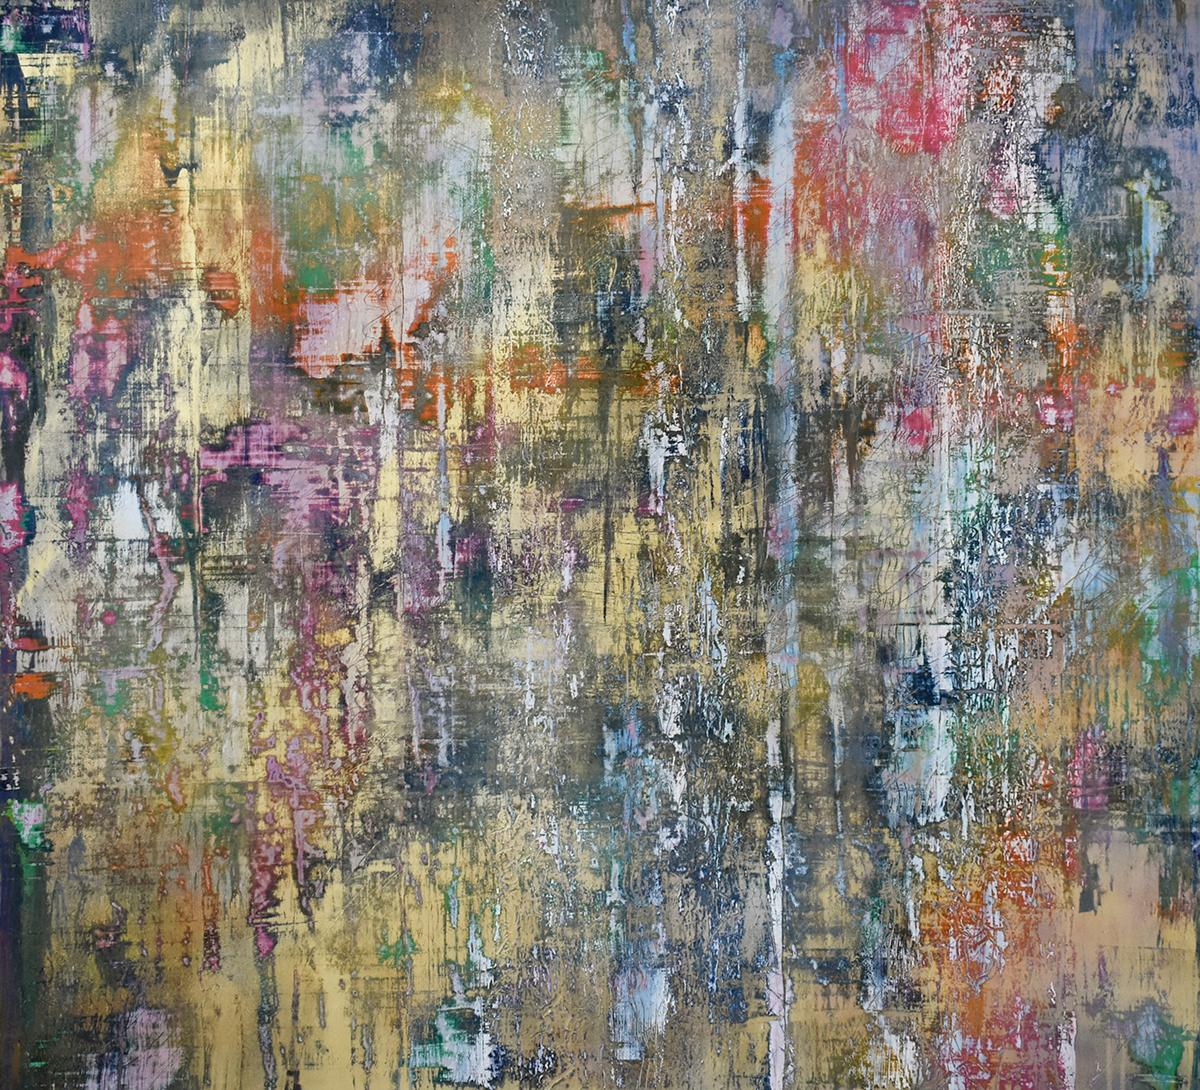 Learning the Indecipherable (Gerhard Richter Style Abstract Painting on Paper)